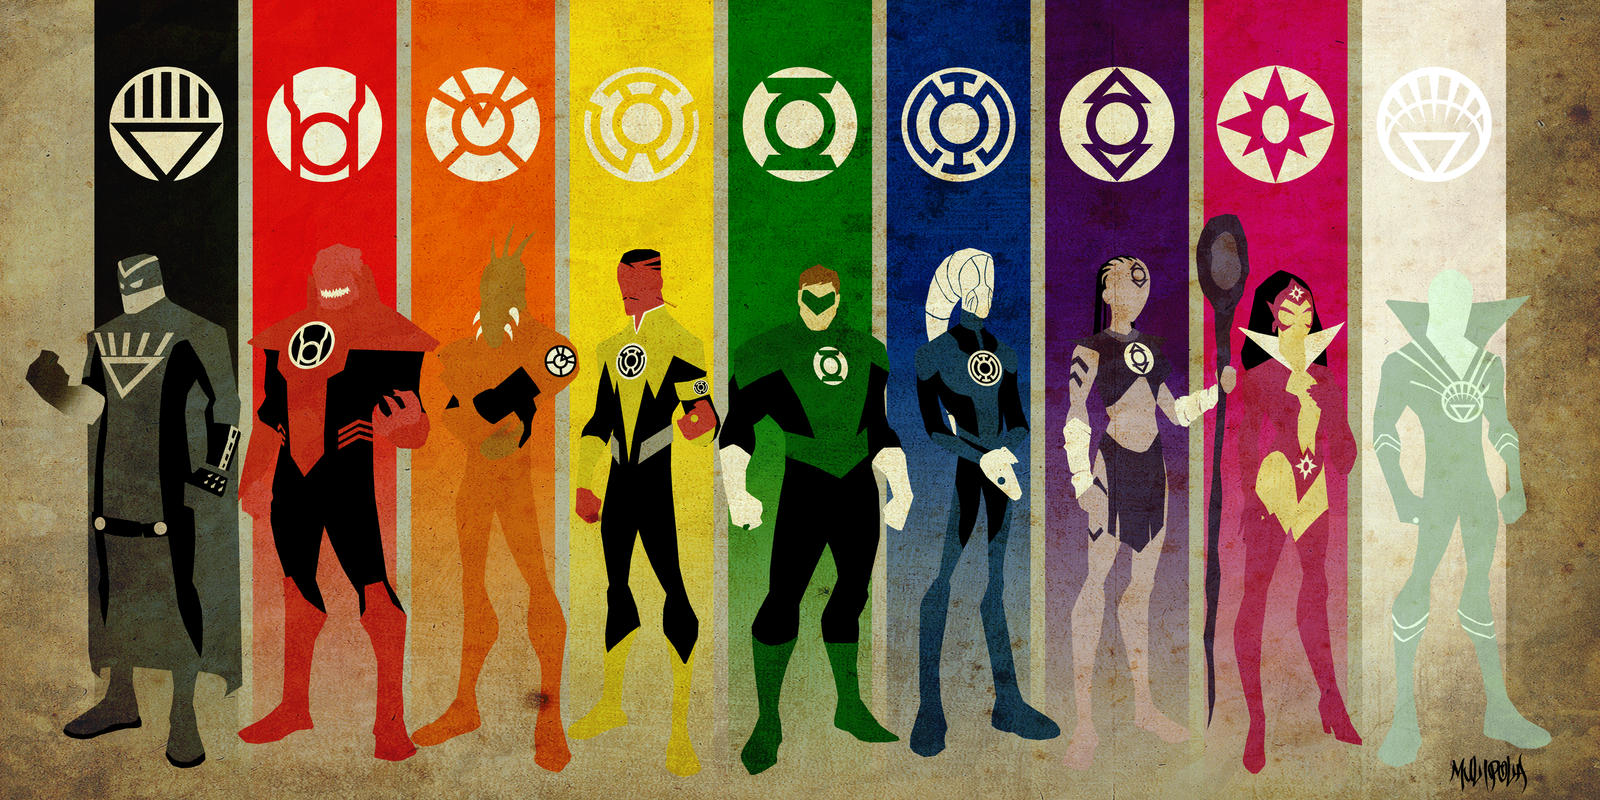 Lantern corps wallpaper by gorzki on deviantart lantern corps ultra print by bloodysamoan biocorpaavc Gallery